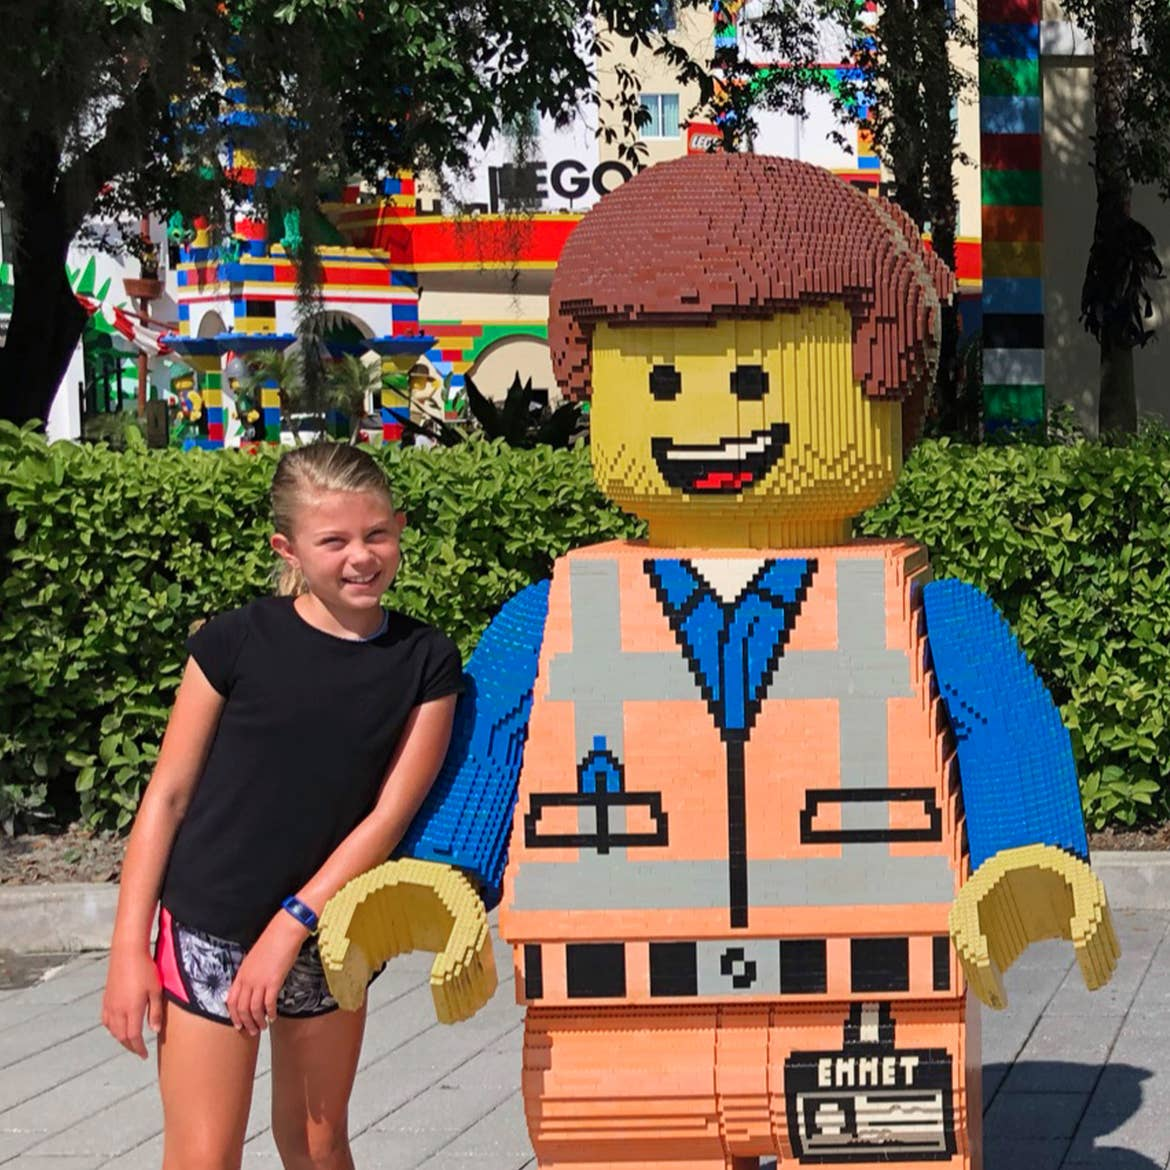 A young girl in a black t-shirt (left) stands next to an oversized LEGO figure.